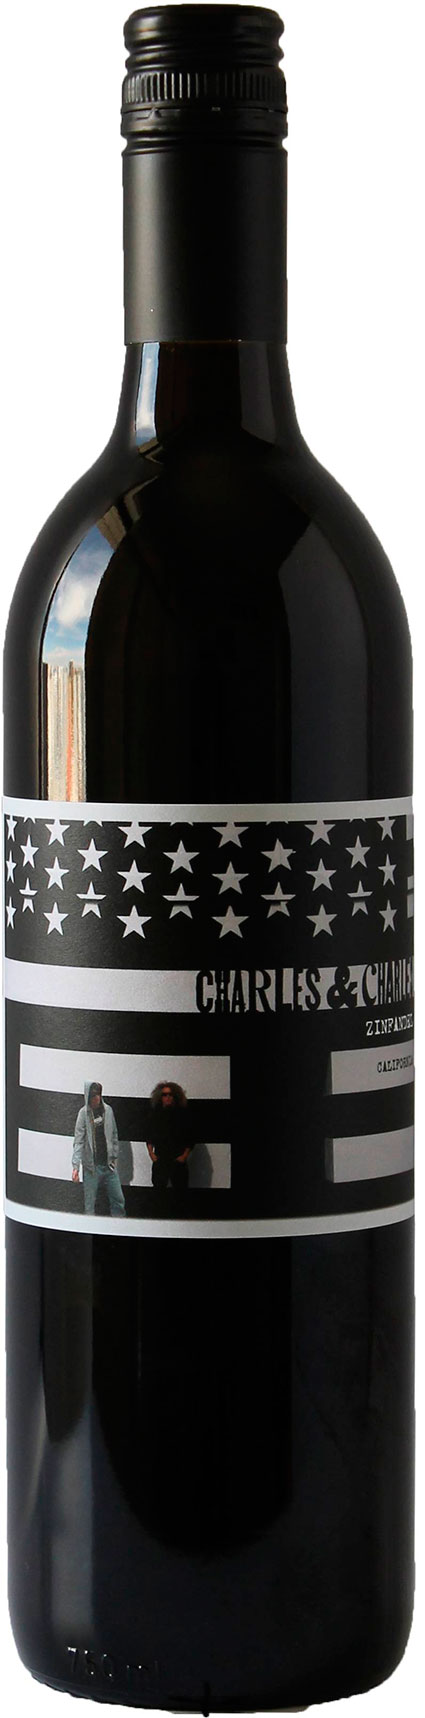 Charles and Charles Post no. 35 ( Charles Smith Wines  ) 2013